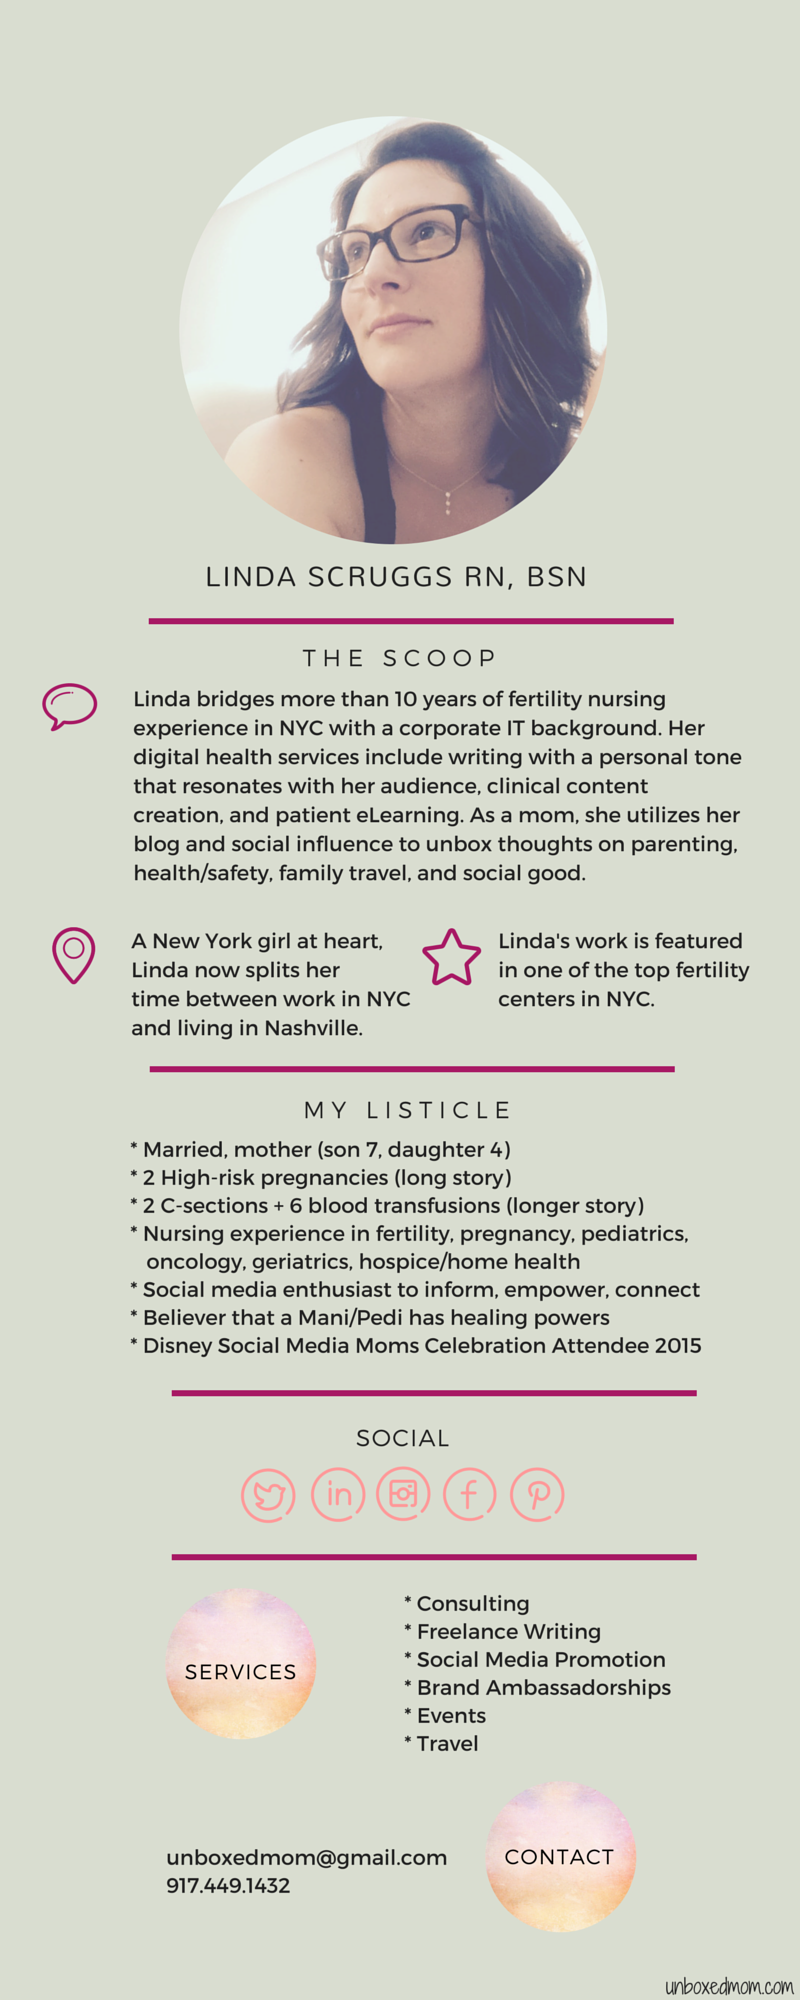 Linda Scruggs Media Kit/One-Pager